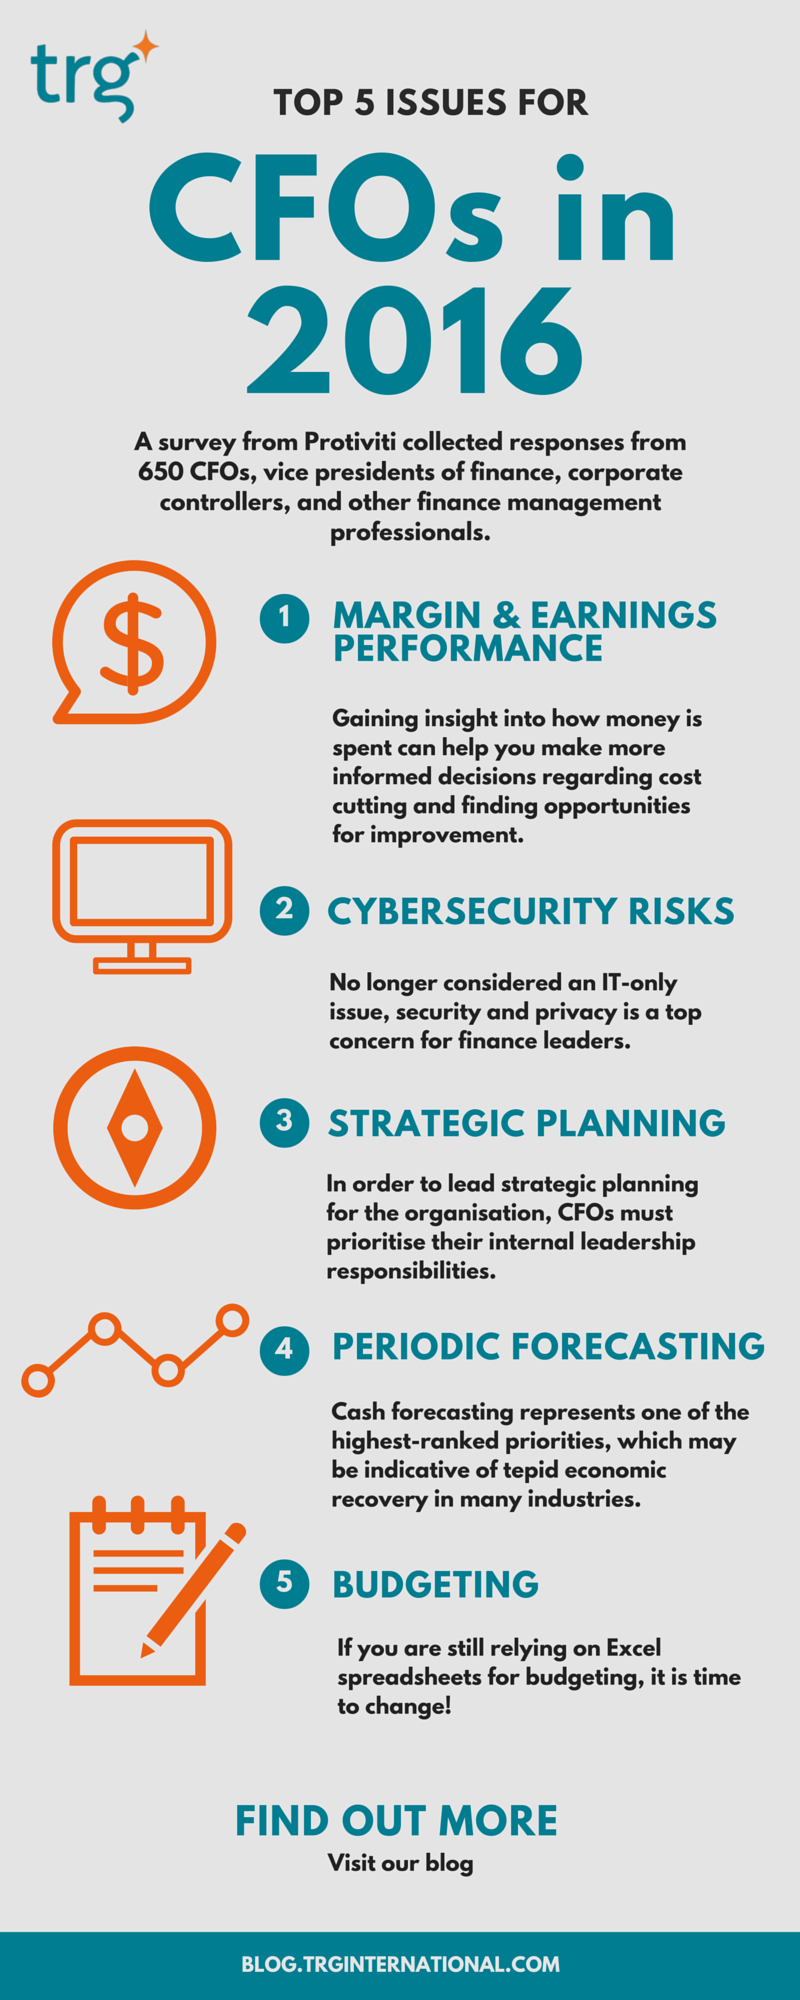 Top_5_issues_for_CFOs_in_2016_v6.png